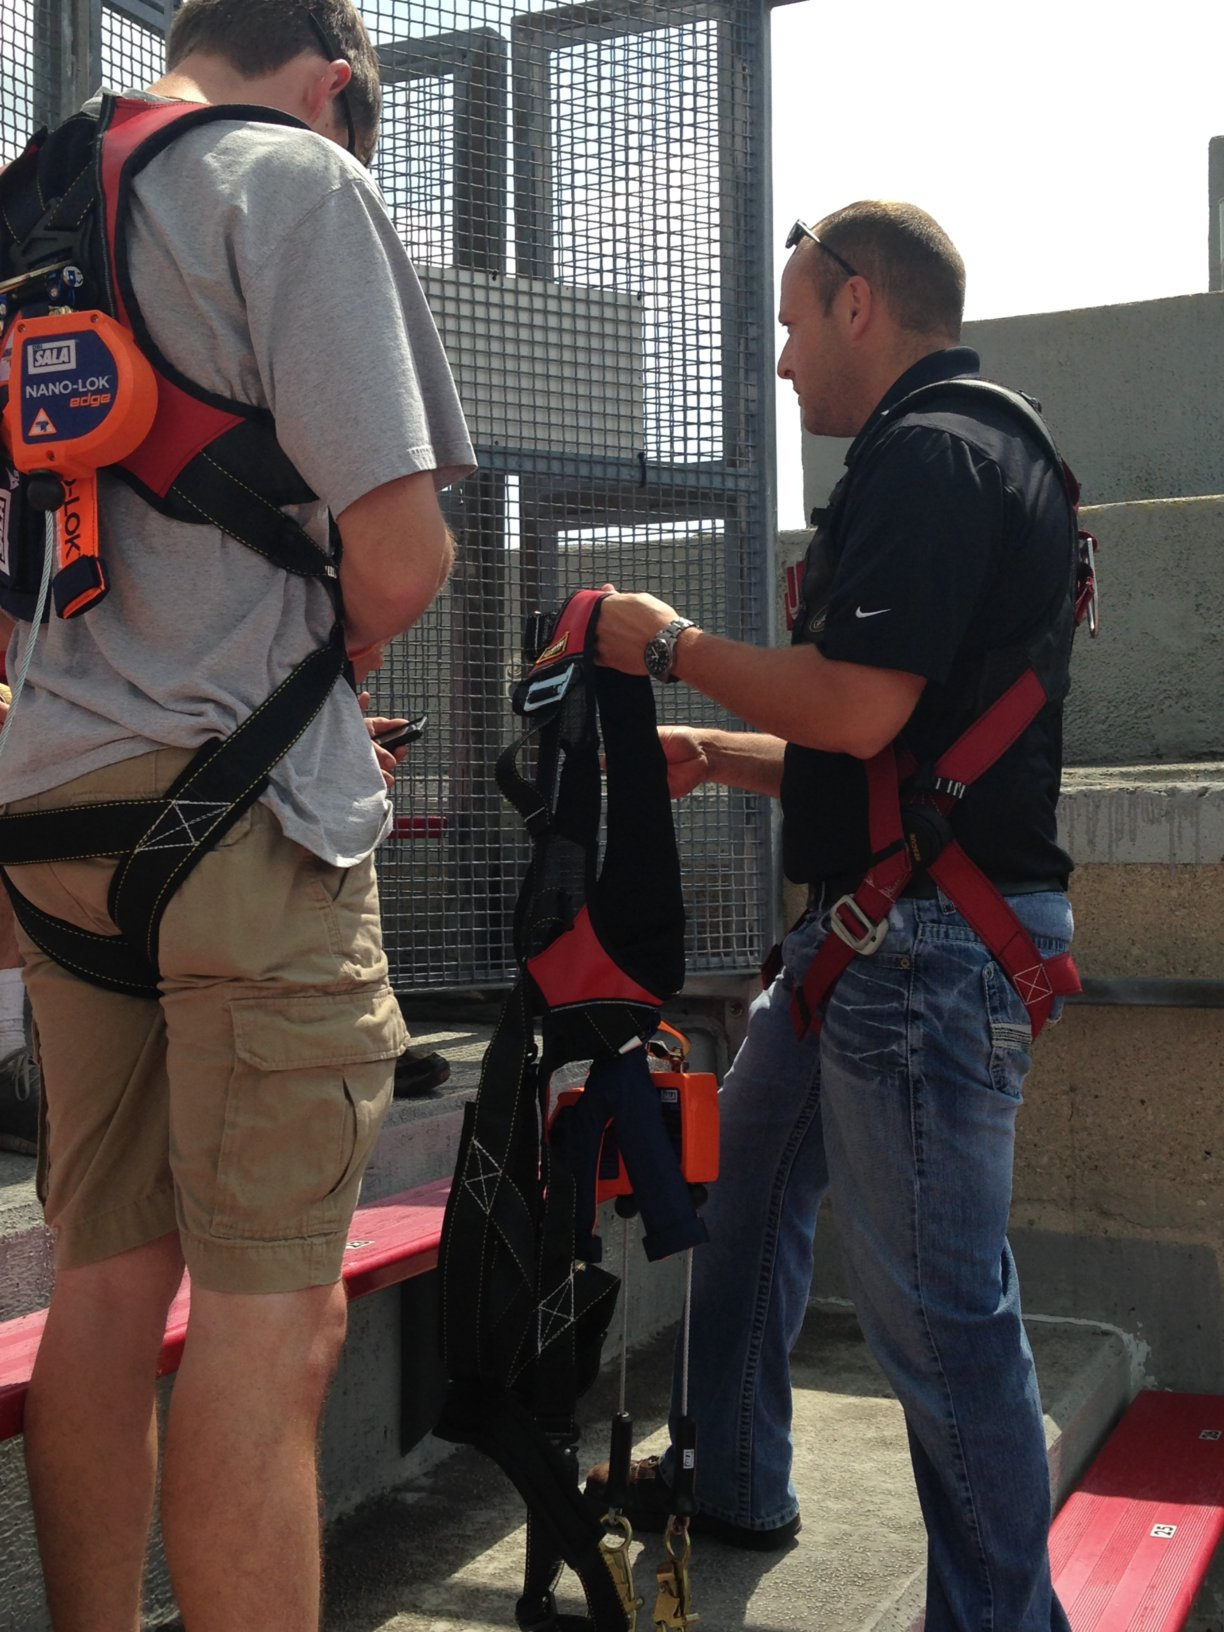 Us Fall Protection - Training